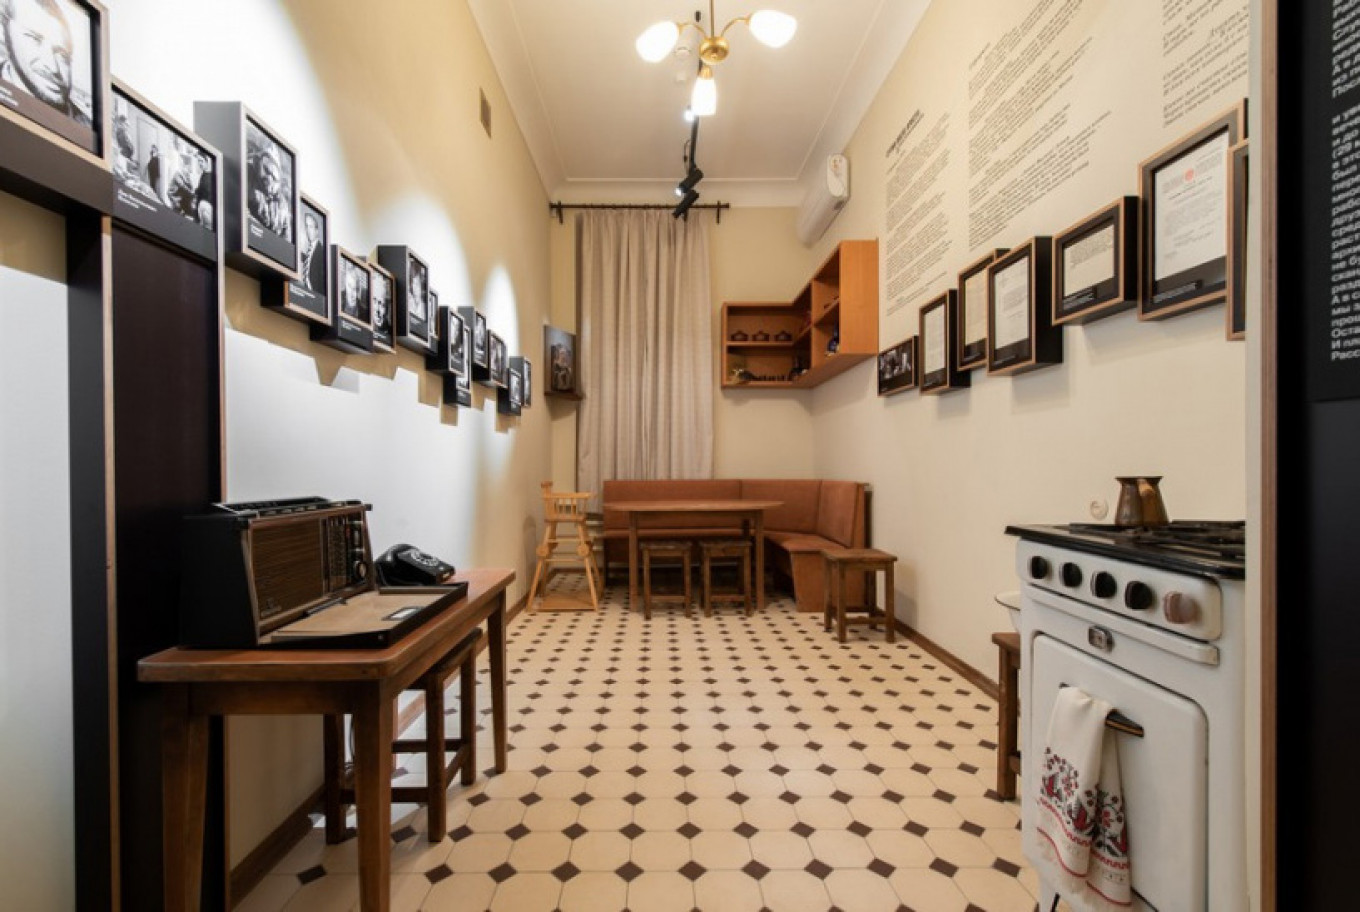 The kitchen (note the highchair). Courtesy of A. Solzhenitsyn House of Russian Expatriates